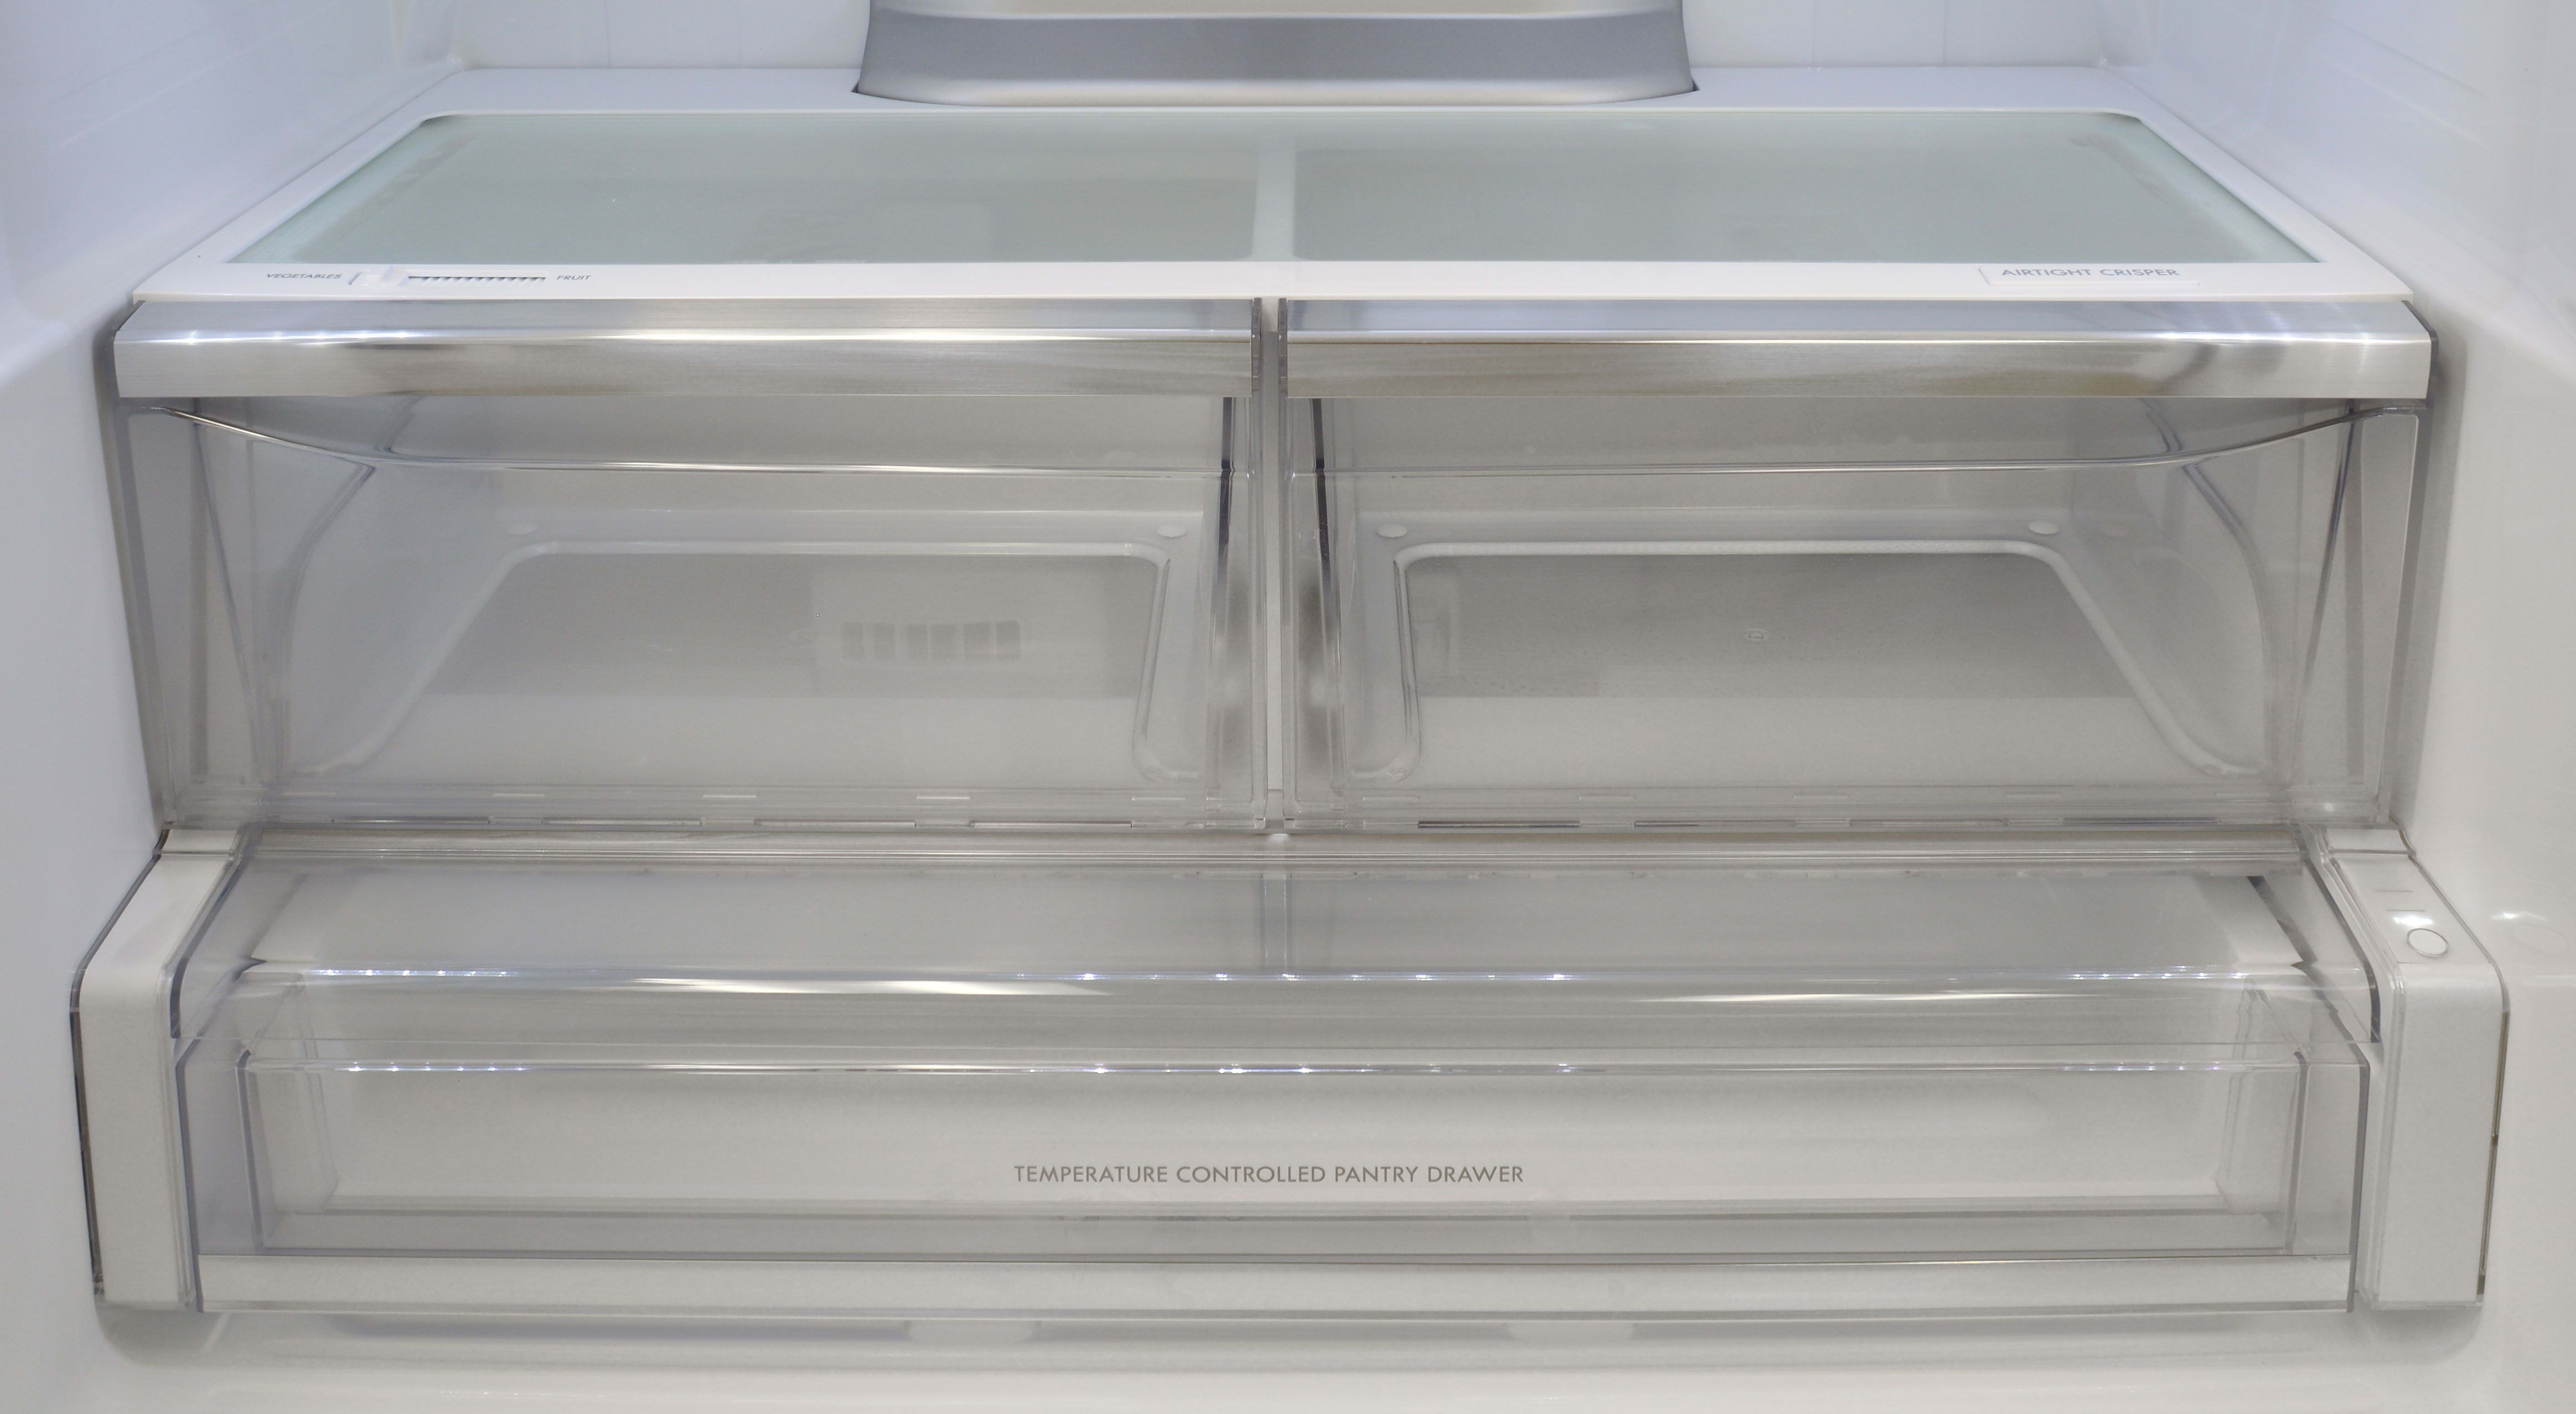 The Kenmore Pro 79993 has two crispers, but only the one on the right is Airtight. The drawer underneath also comes with three distinct temperature settings.